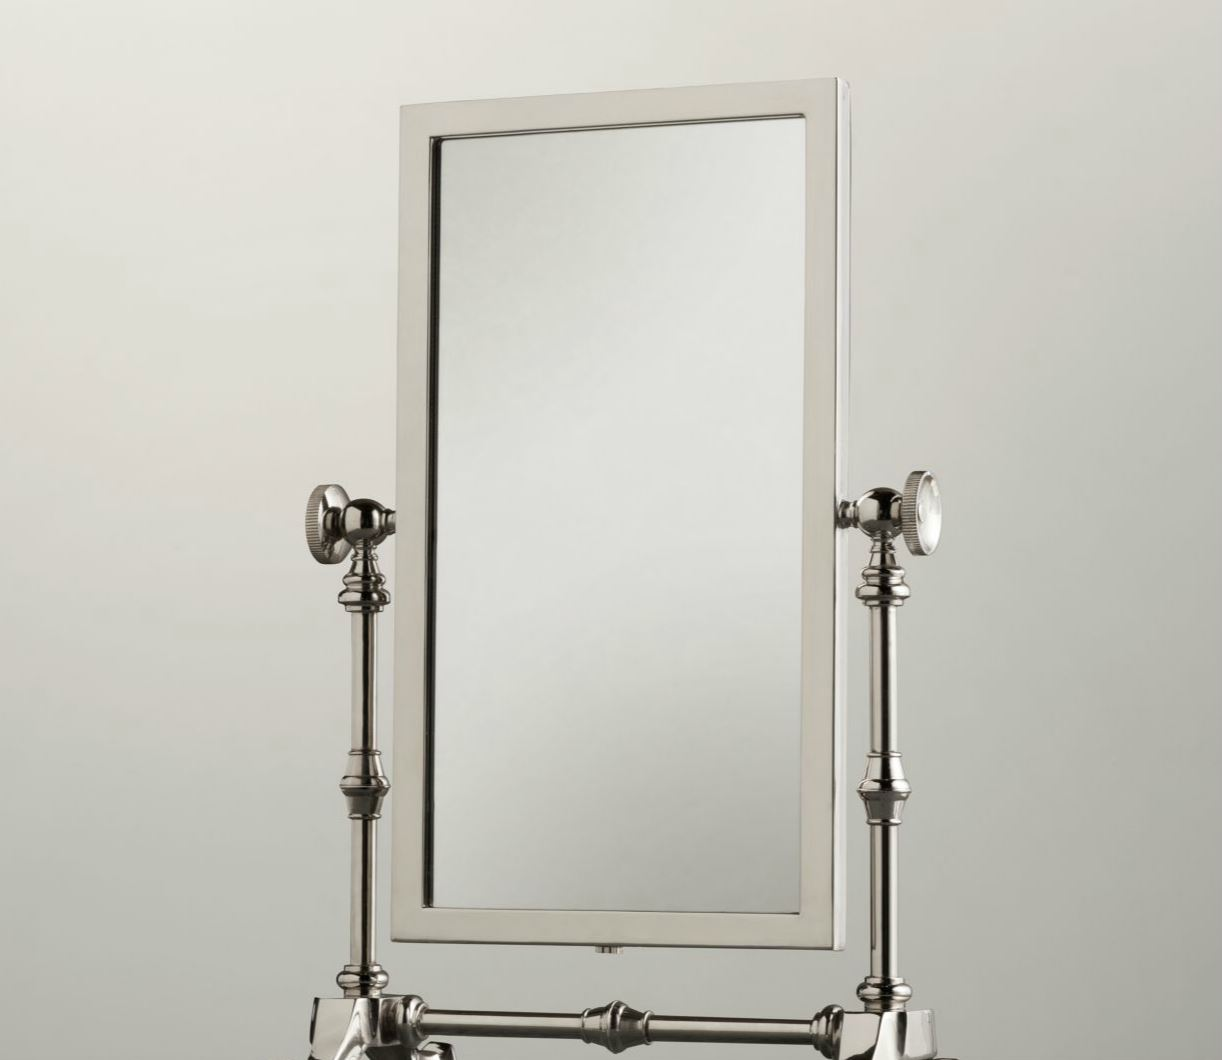 Vintage-style shaving mirror from Restoration Hardware